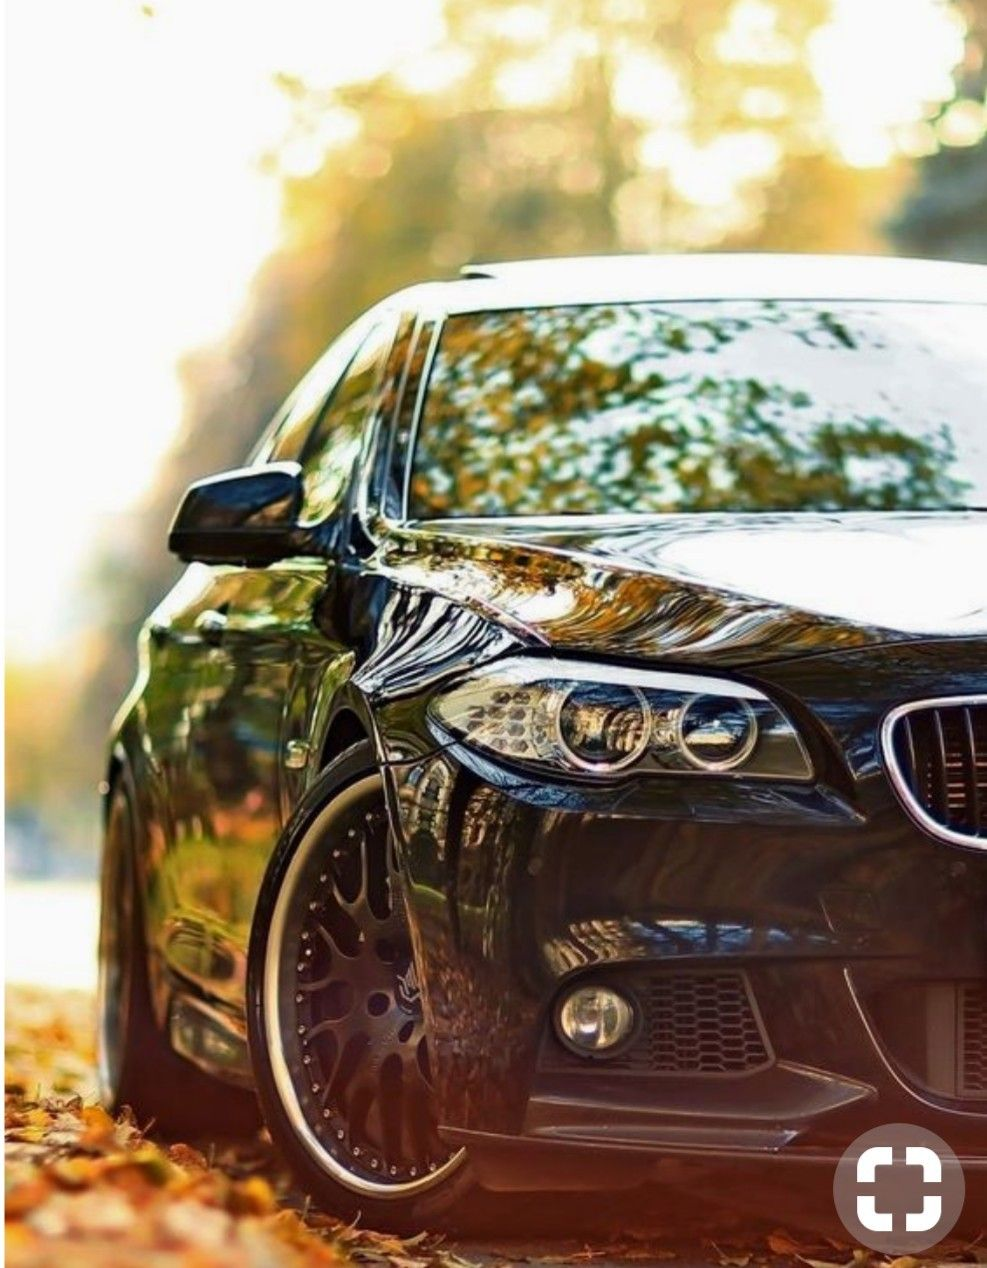 Pin by Maniax Willie on Stuff to buy (With images) Bmw